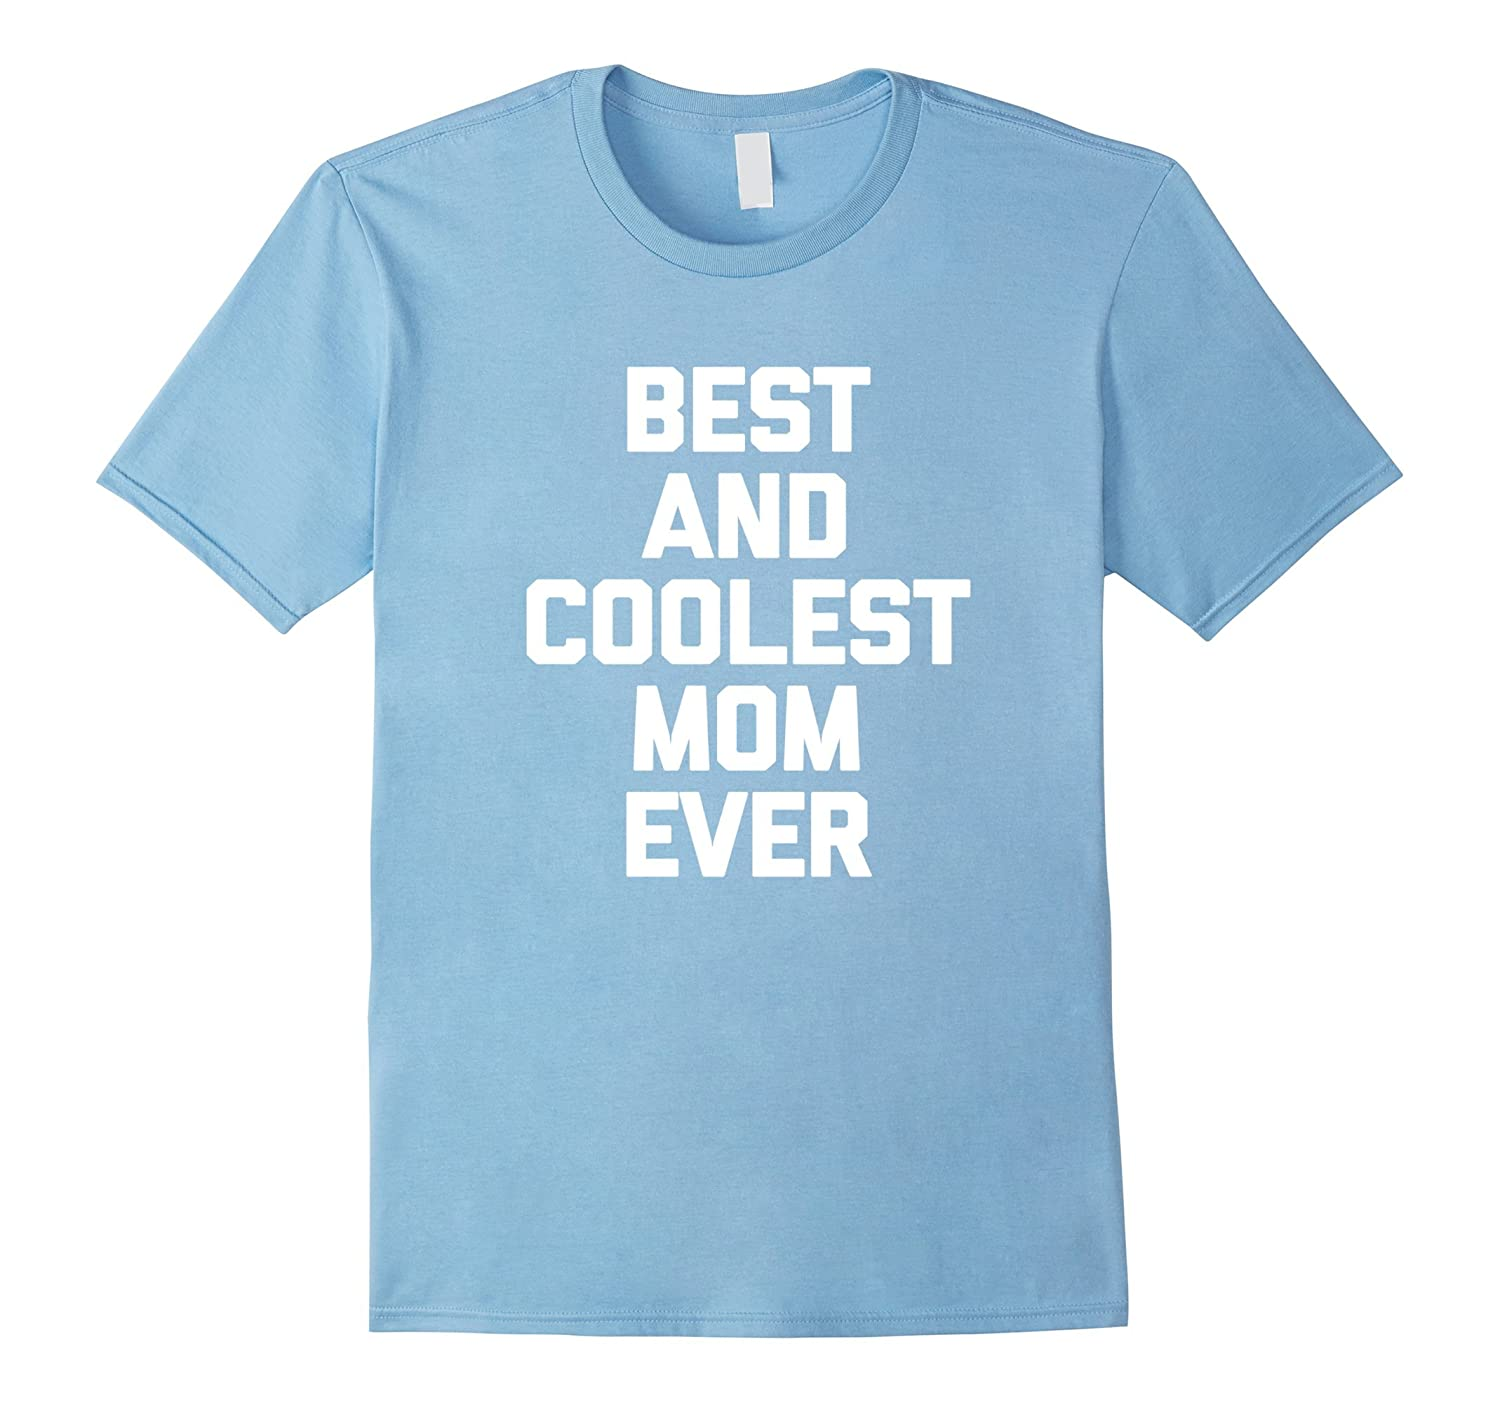 56a1b883c Amazon.com: Best & Coolest Mom Ever T-Shirt funny saying Mother's Day:  Clothing